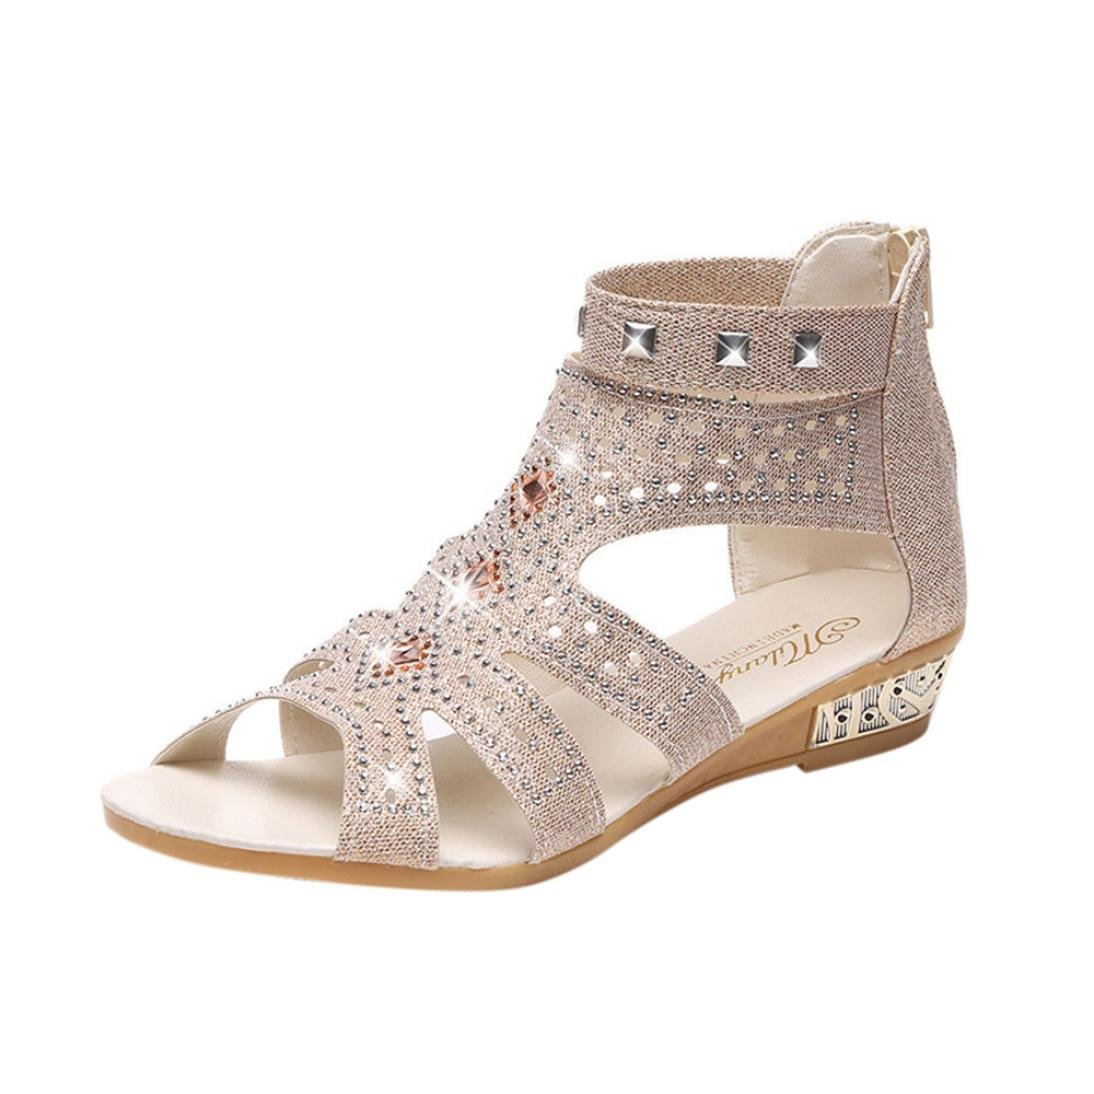 9c98f365d8 Gender: Women ,Womens Crisscross Summer Gladiator Braided Comfort Yoga  Strappy Flats-Sandals,Women Comfortable Summer Bohemia Sandals Clip Toe  BeachShoes ...